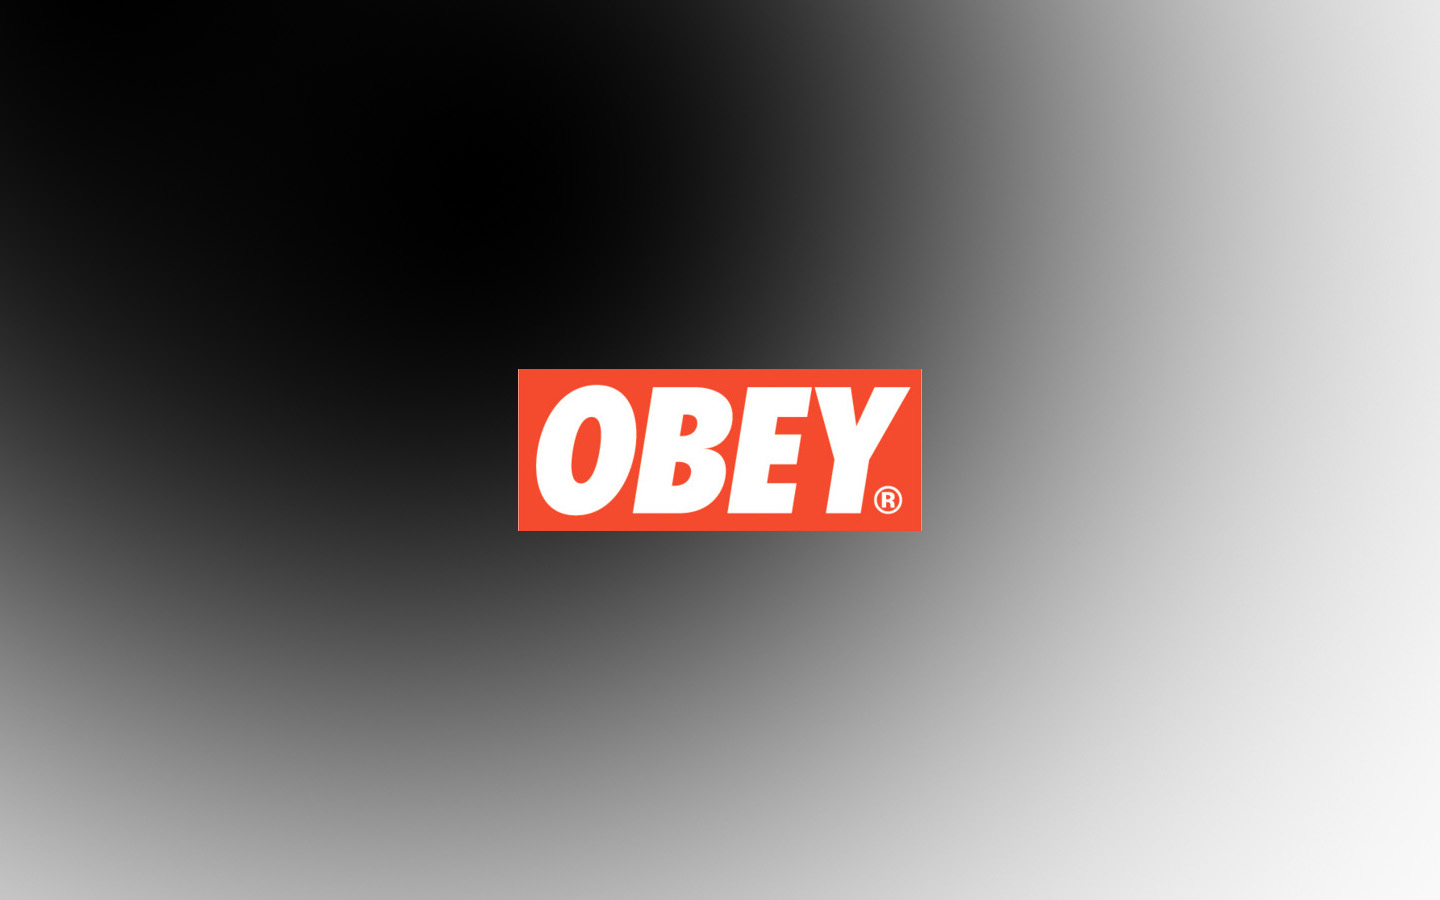 Obey Wallpaper Iphone 5 Similar wallpaper 1440x900